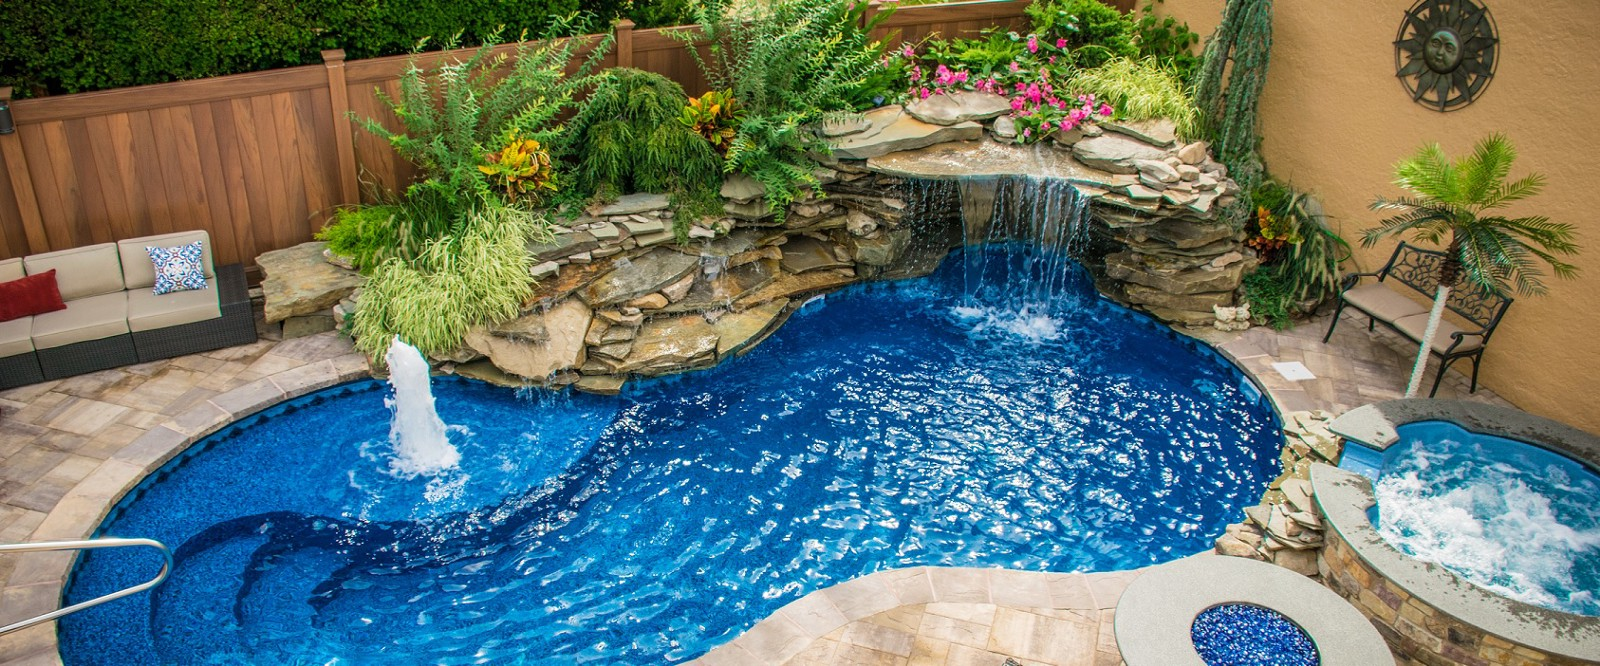 Things To Consider When Hiring Pool Service Contractors